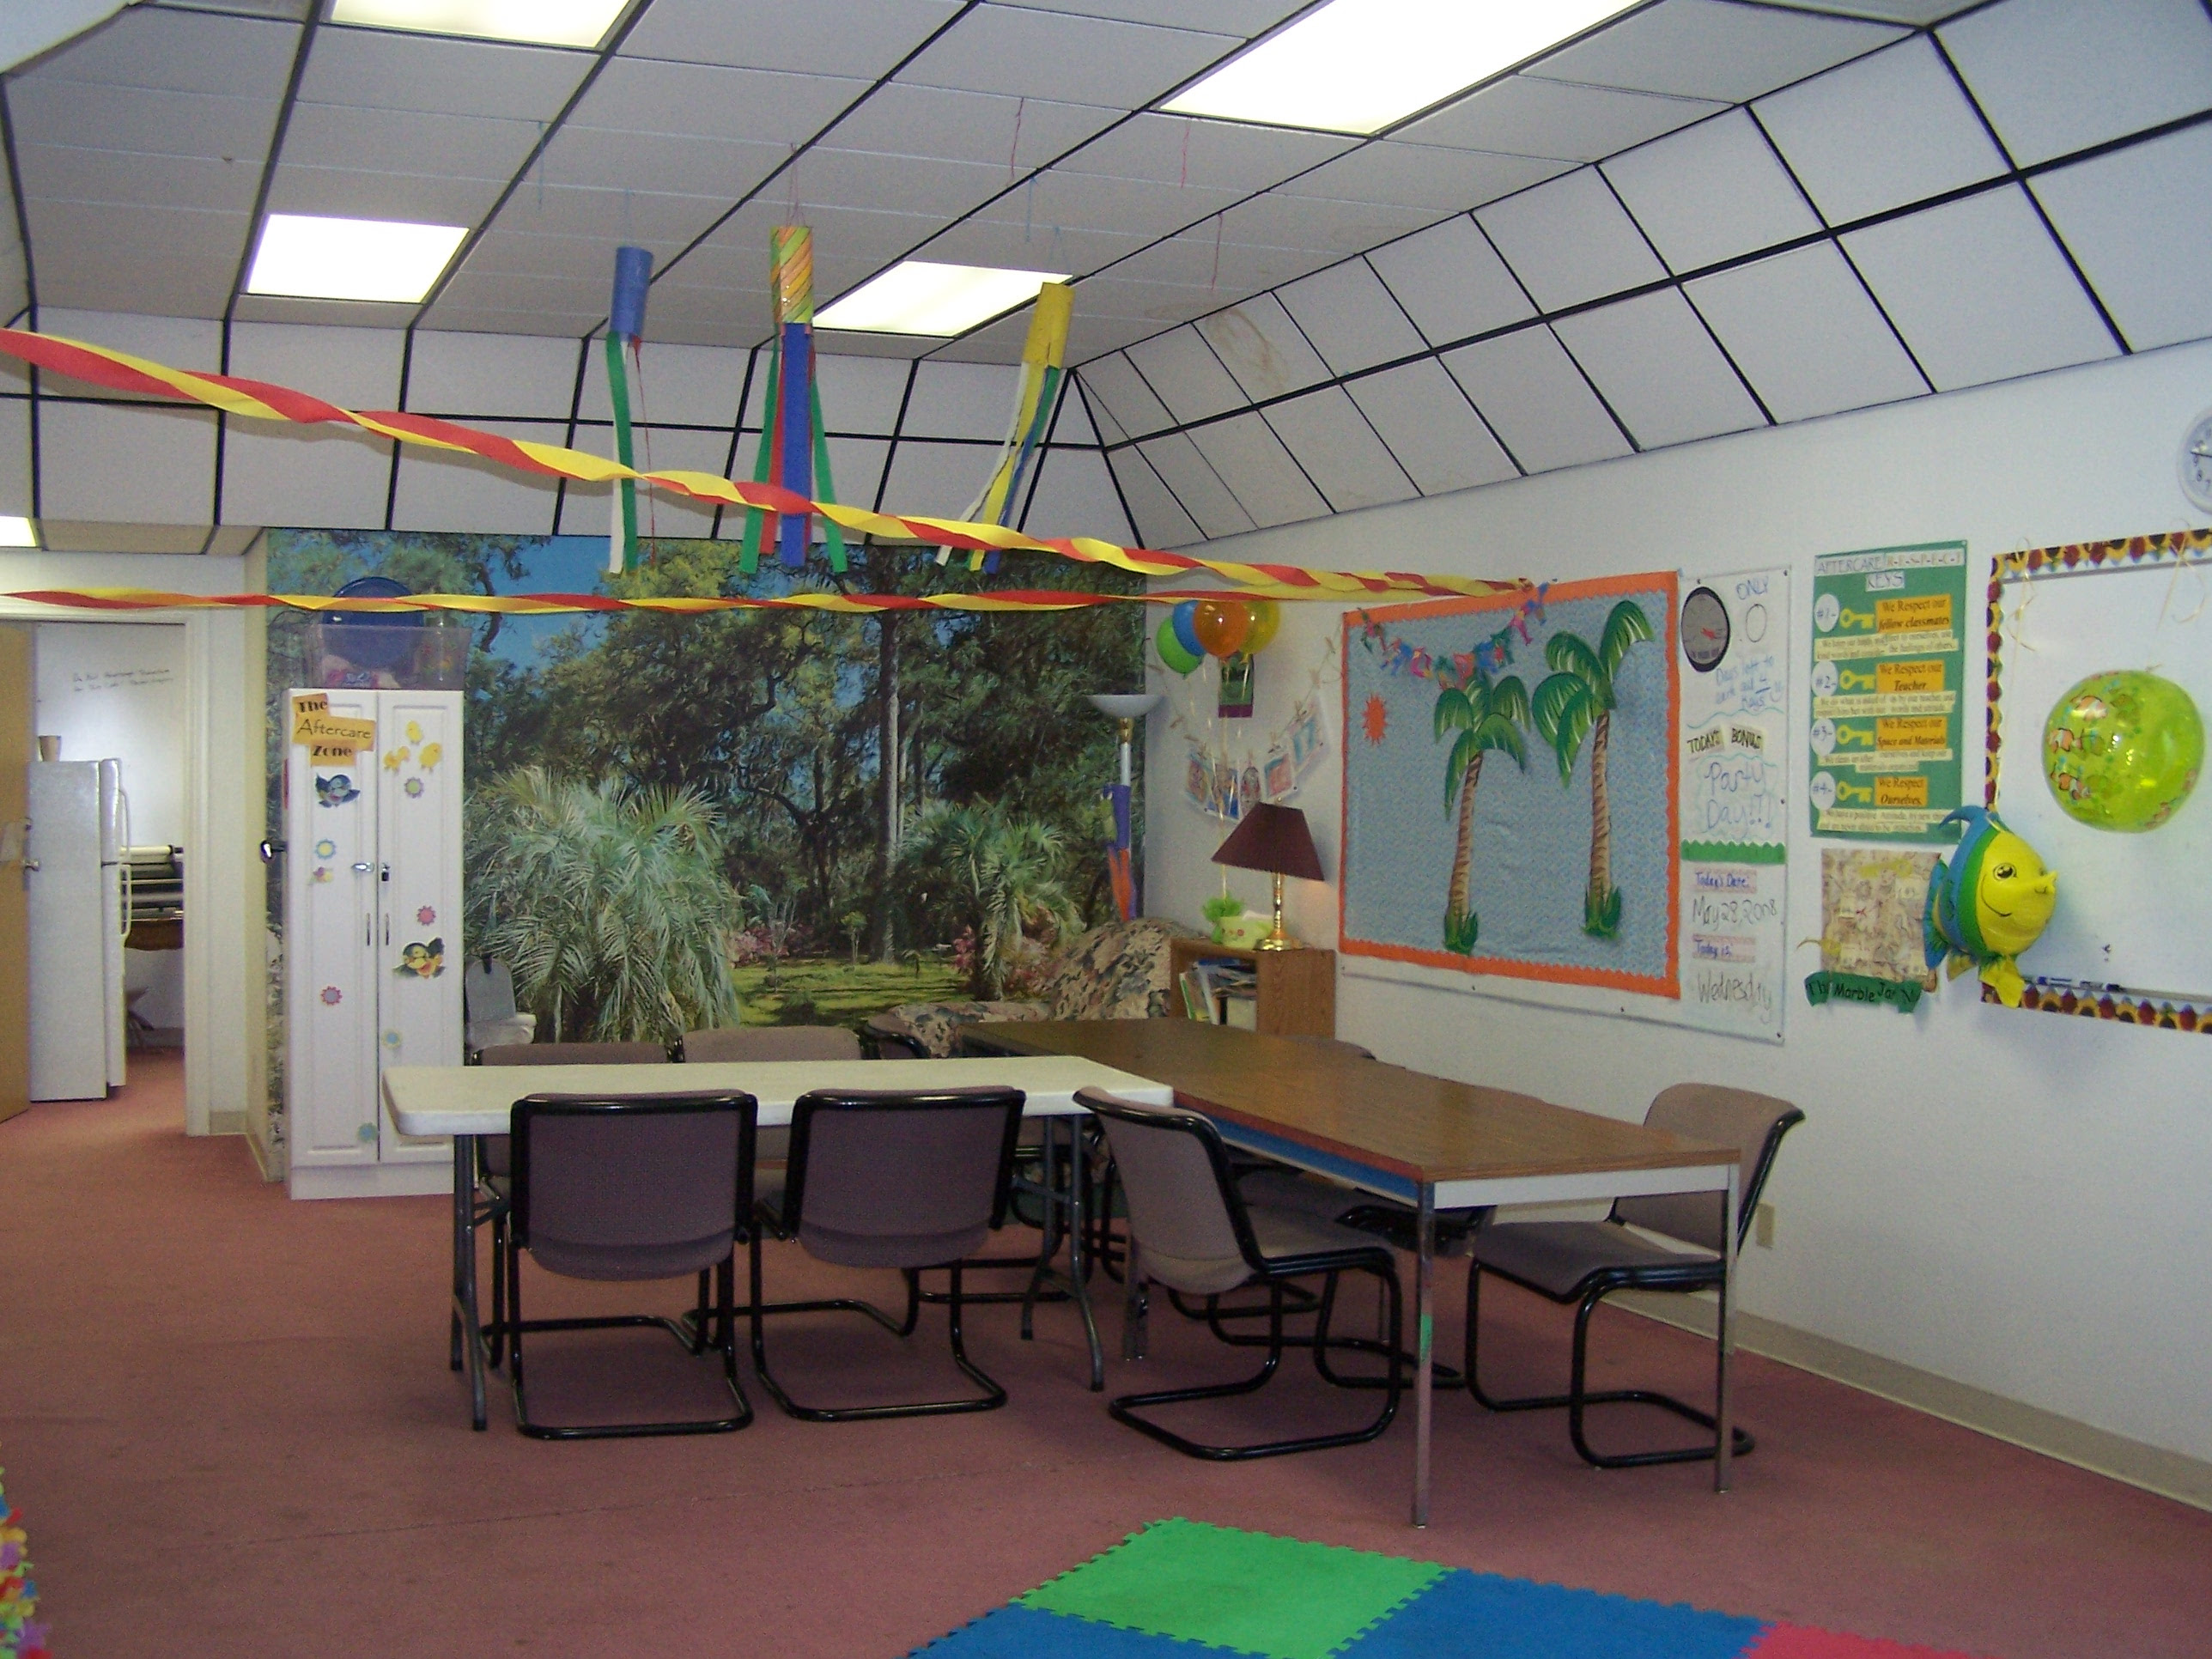 Classroom Arrangement and Design